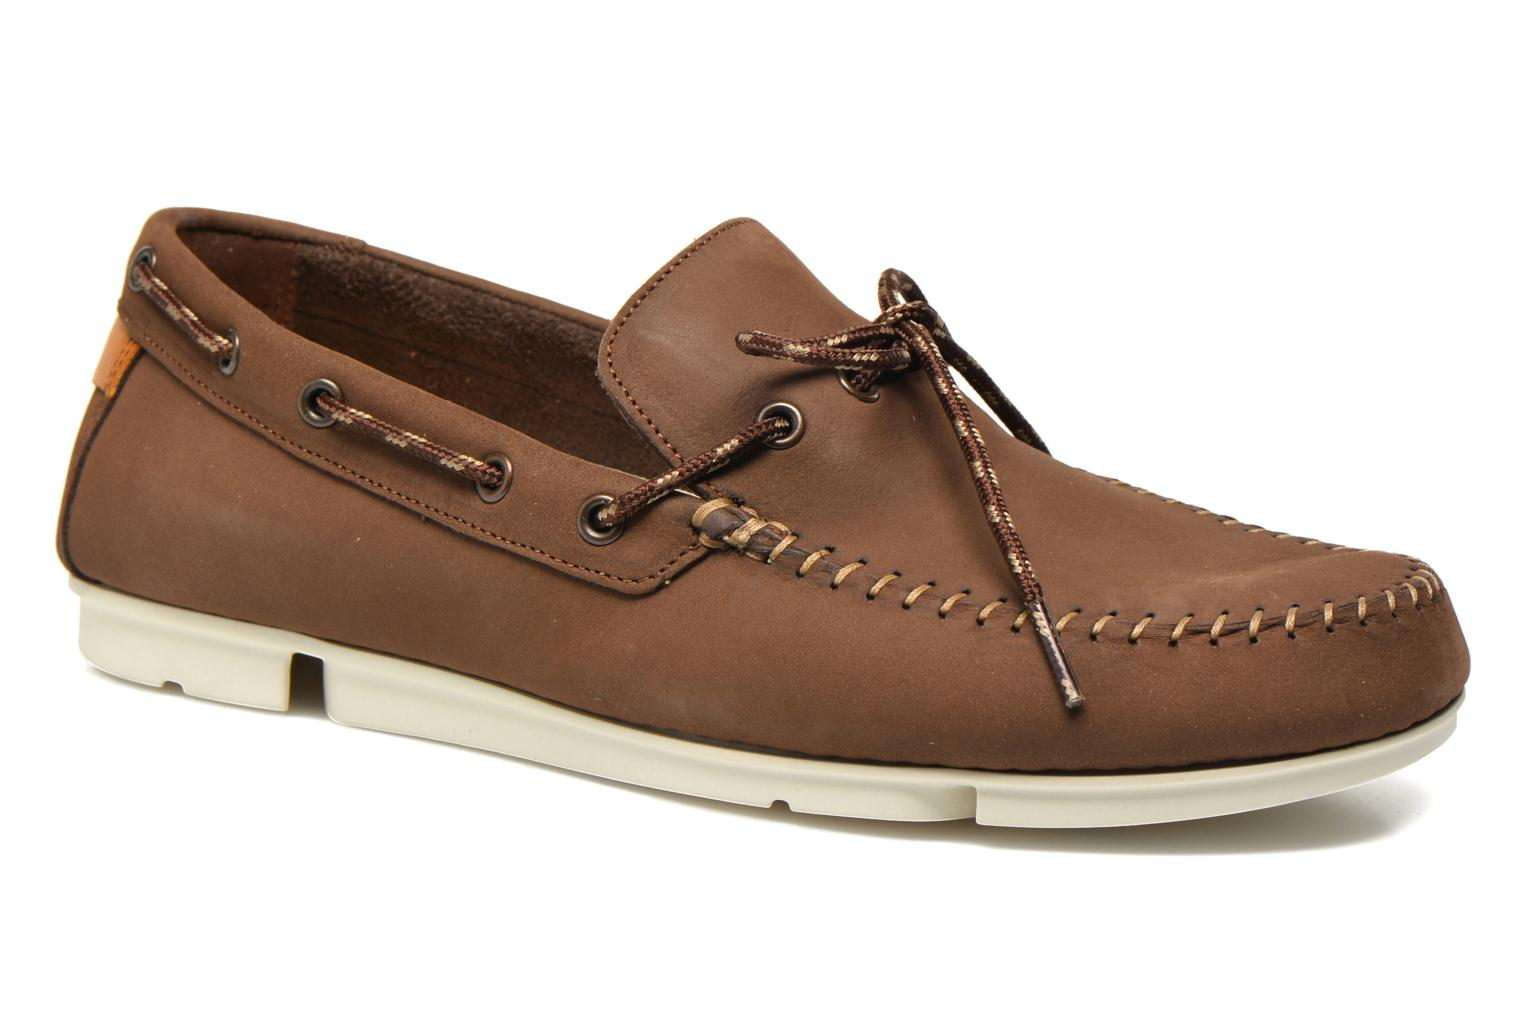 Mocassins Trimocc Edge by Clarks